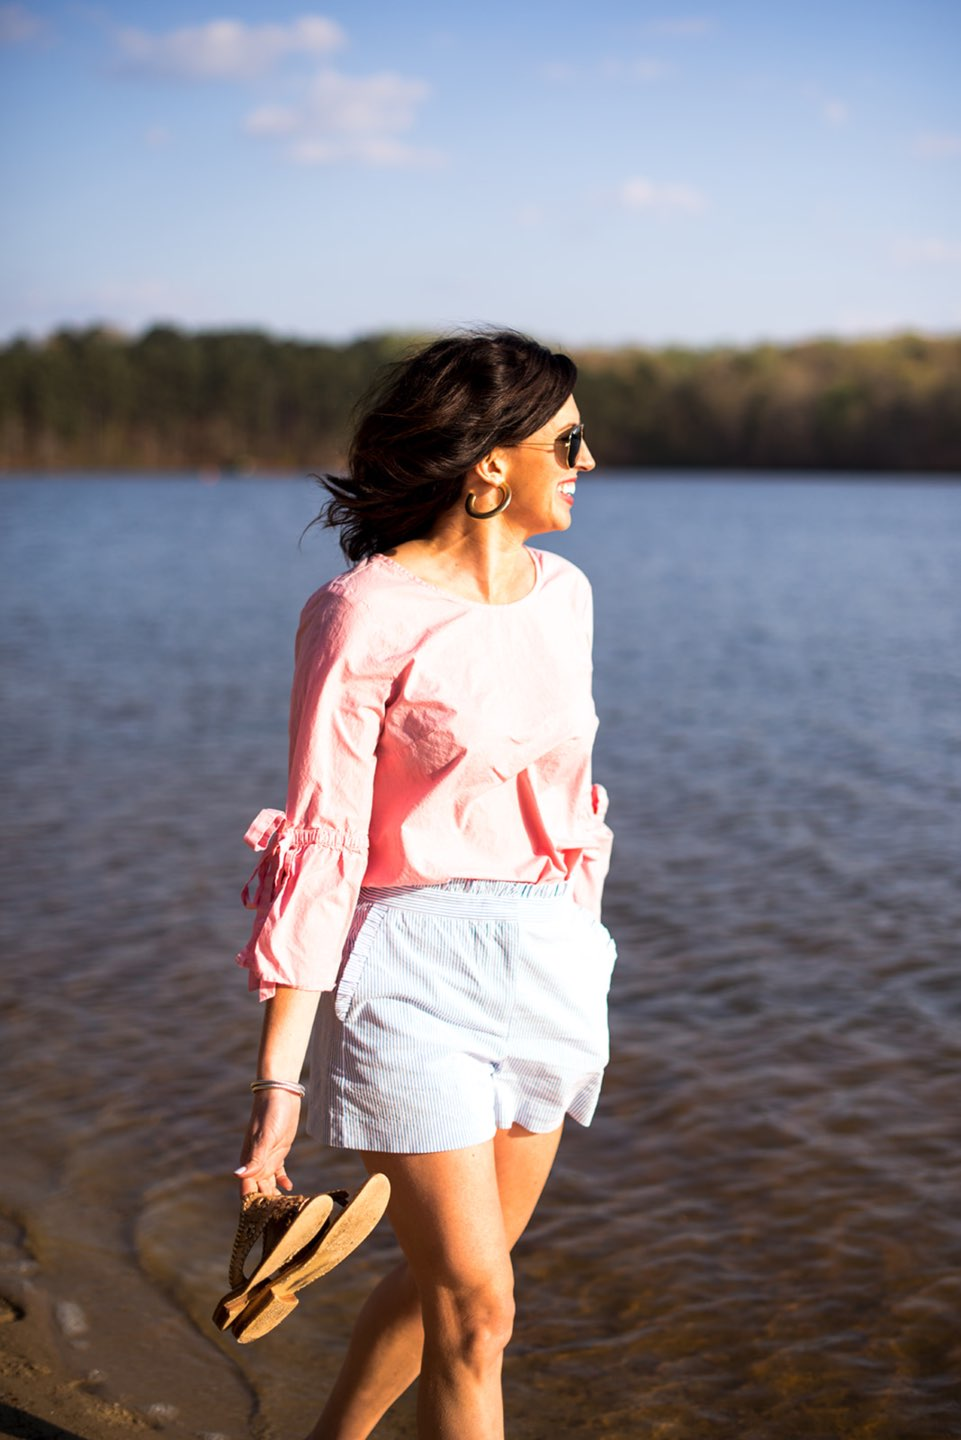 Casual Spring Outfits featured by top US fashion blog I'm Fixin' To; Image of a woman wearing J. Crew Factory Linen Tie Top, J. Crew Factory Seersucker Shorts, David Yurman Bangle, Sheila Fajl Hoops, Ray-Ban Polarized Aviators and Jack Rogers Sandals.